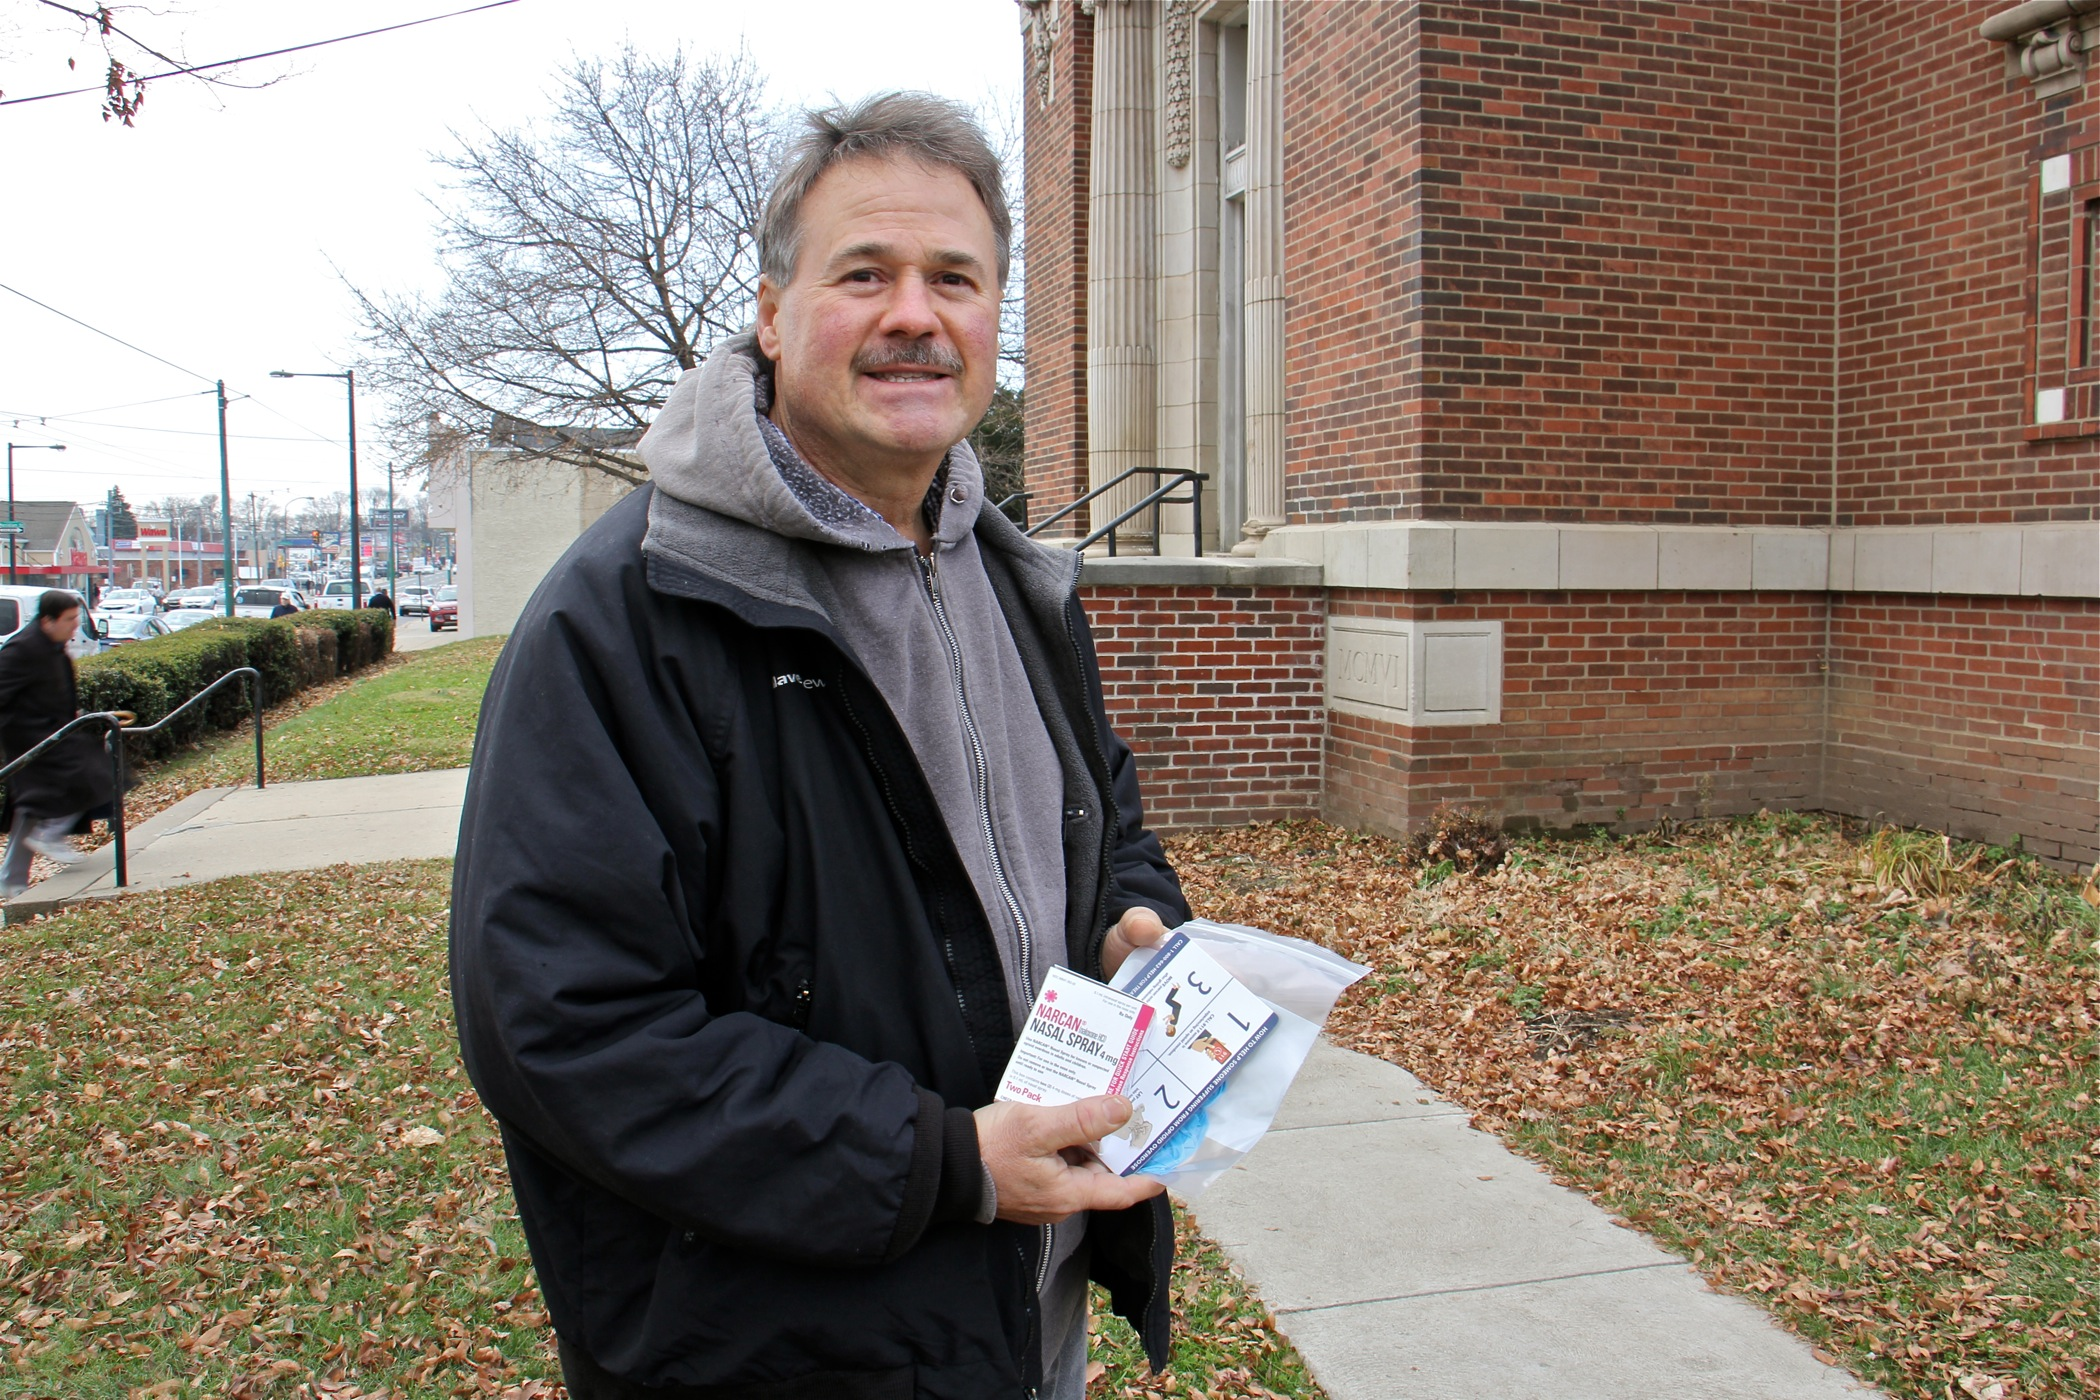 Steve Bryant stops at the Holmsburg Library to pick up some free naloxone. Eighty sites across Pennsylvania distributed the drug that reverses the effects of an opioid overdose.